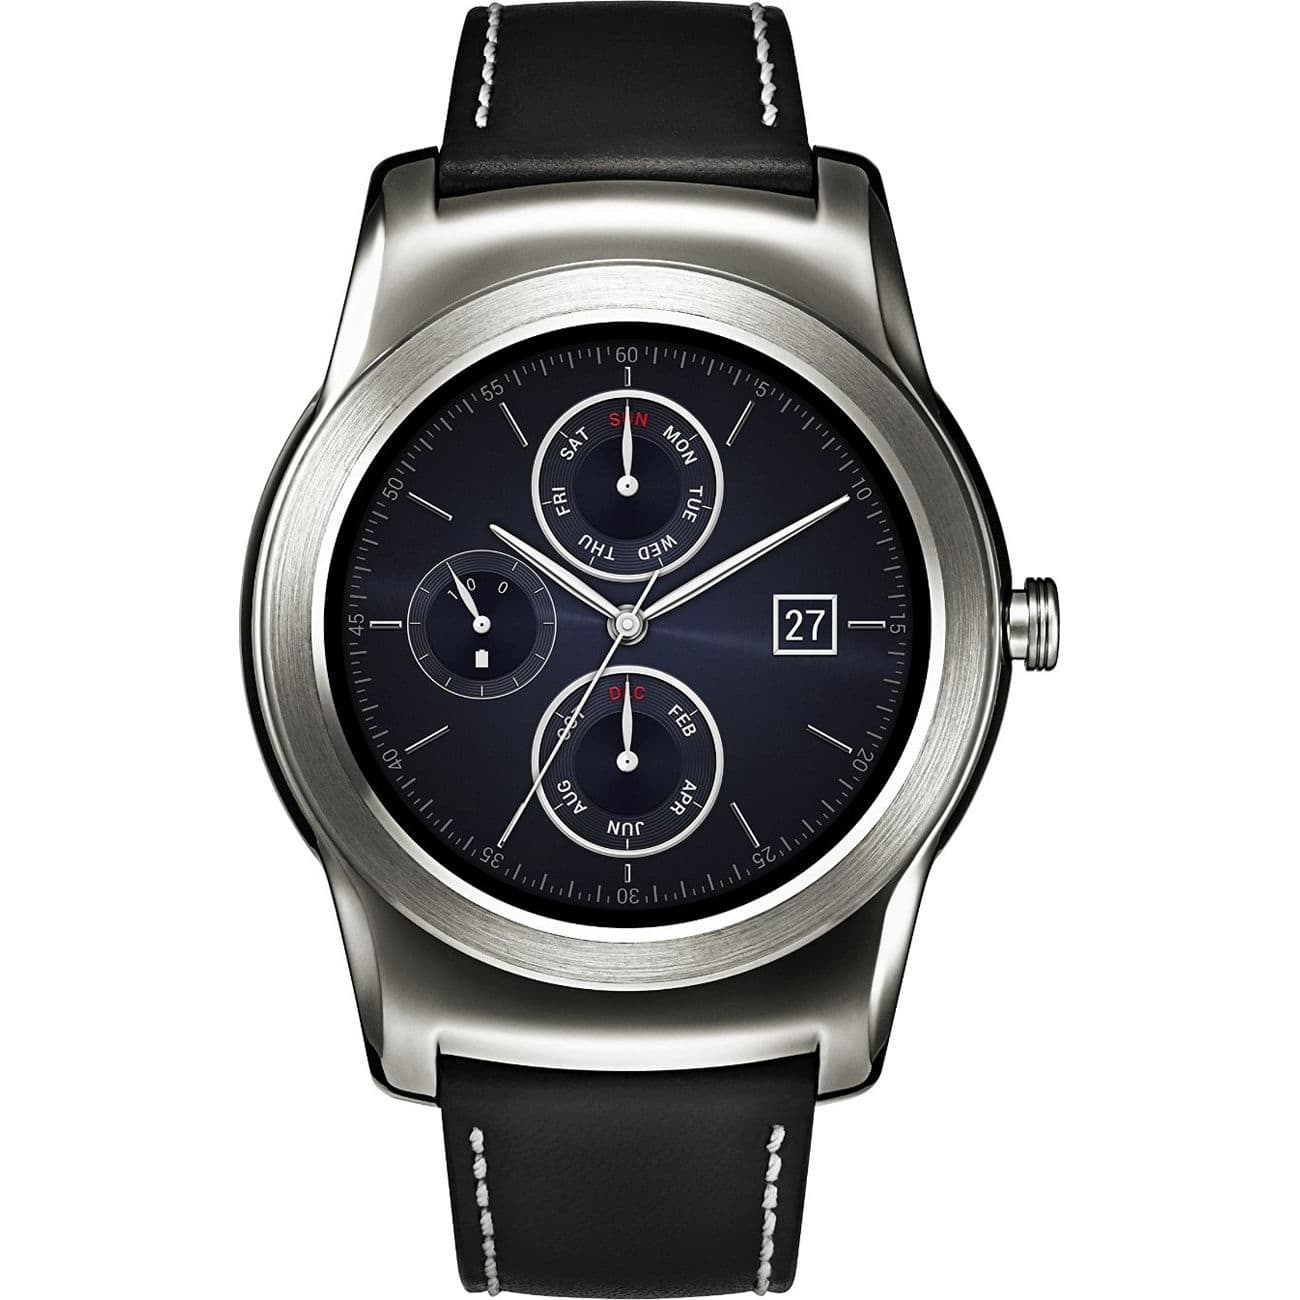 LG Watch Urbane Android P-OLED Smartwatch $215 + Free Shipping!